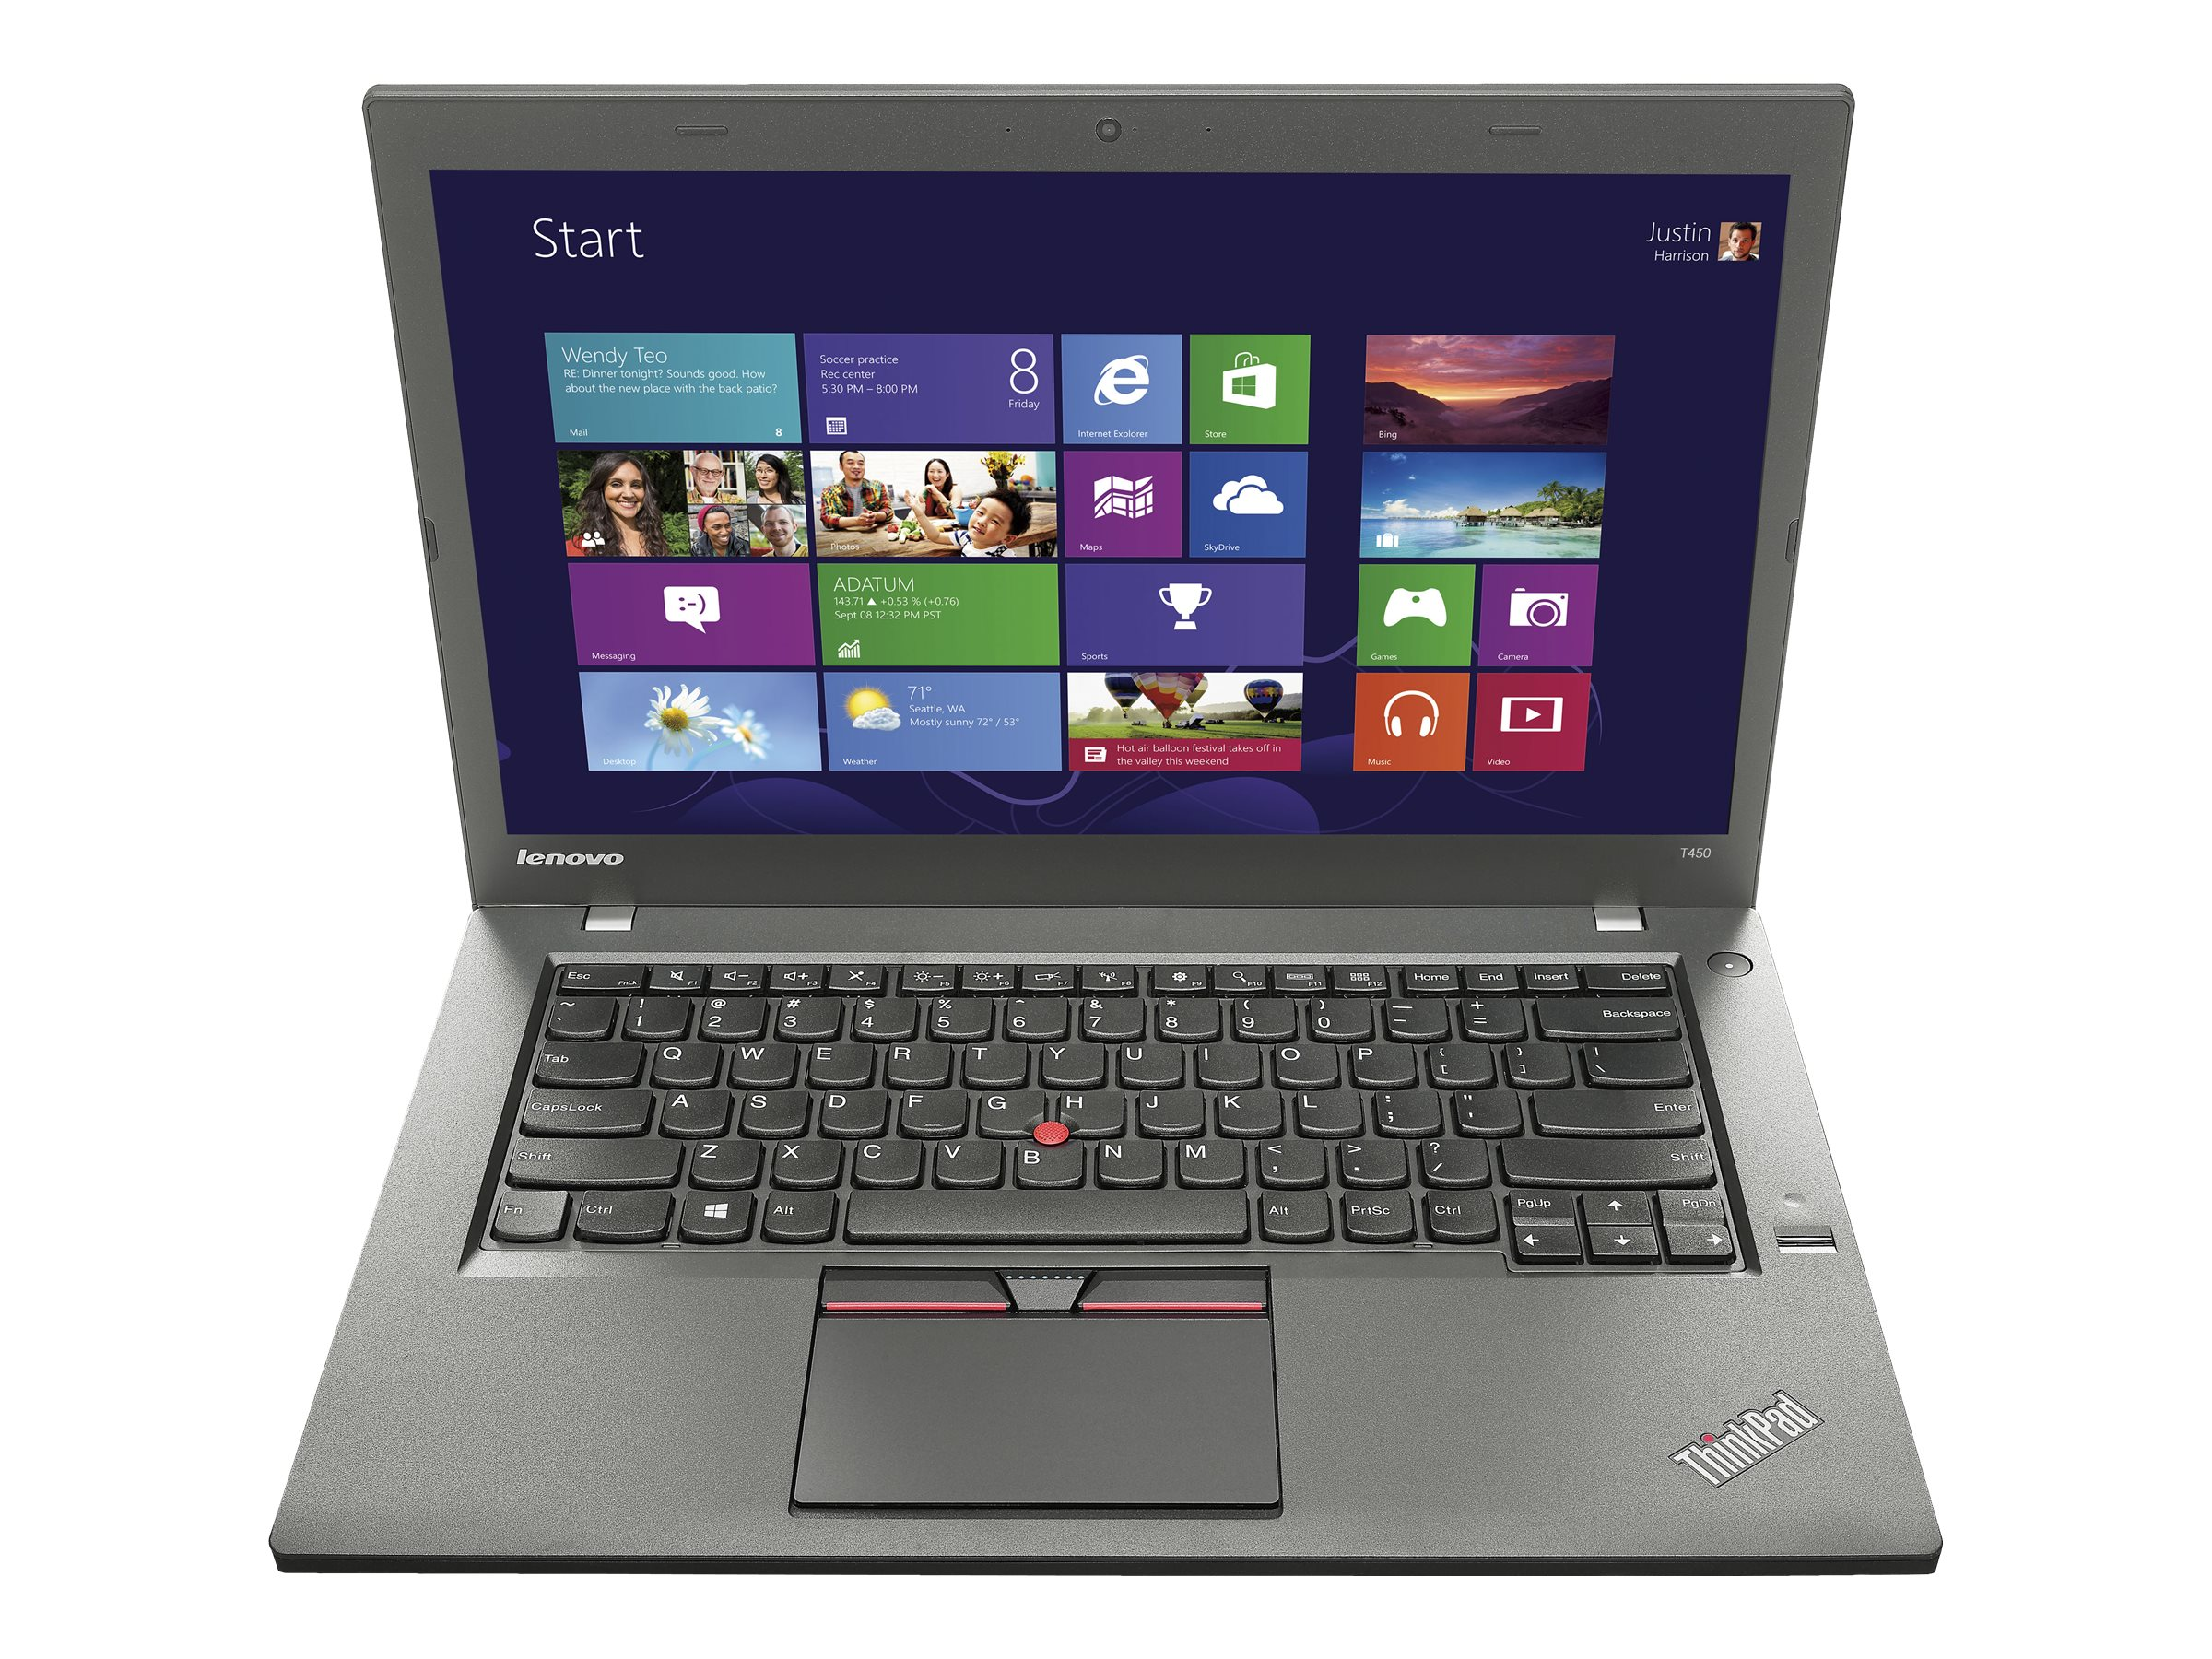 Lenovo ThinkPad T450 2.3GHz Core i5 14in display, 20BU0002US